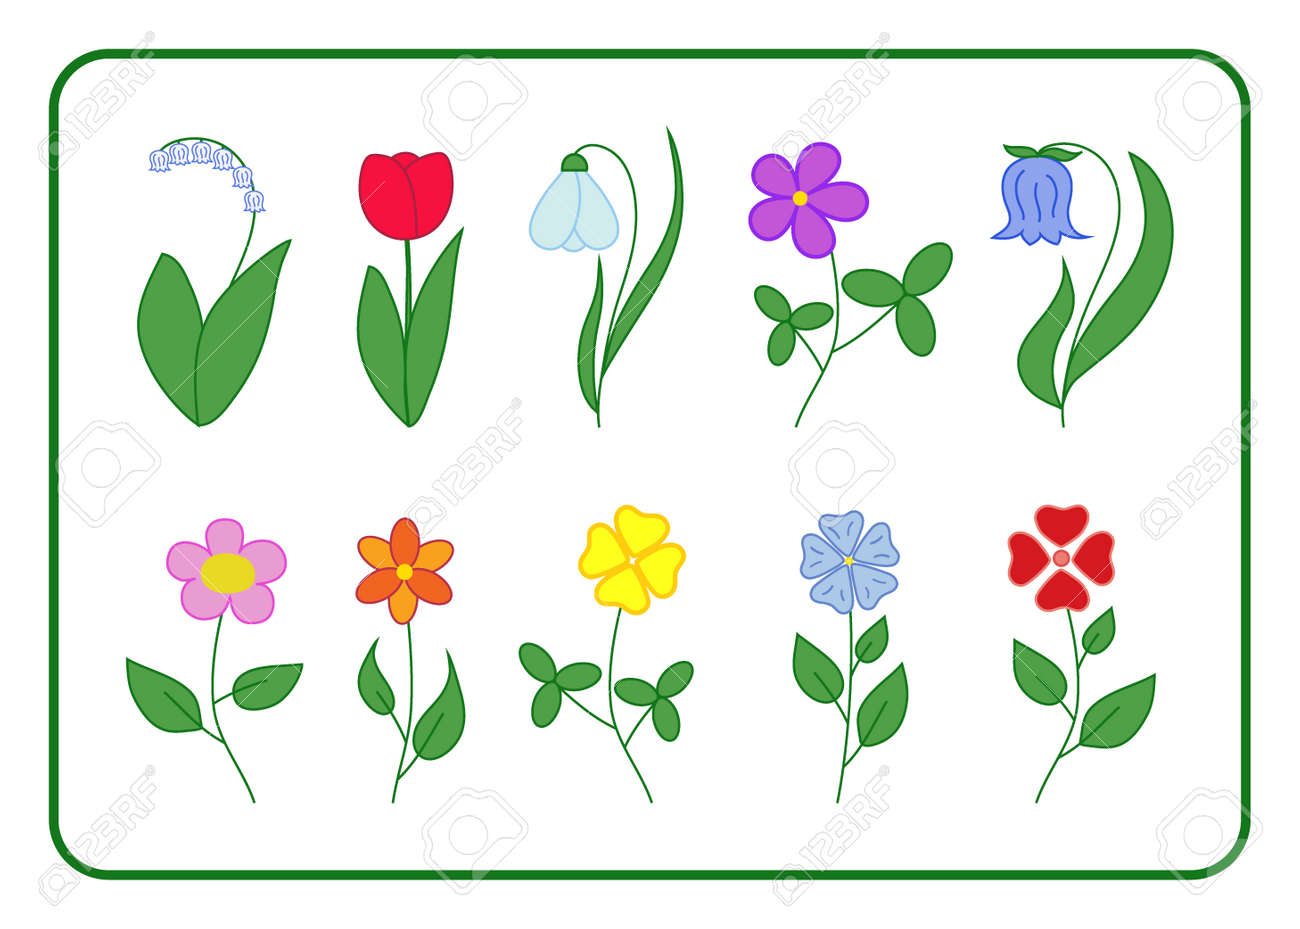 Tree cartoon flower icons set nature floral flat signs isolated on stok fotoraf tree cartoon flower icons set nature floral flat signs isolated on white background summer and spring tulip bell lily of the valley izmirmasajfo